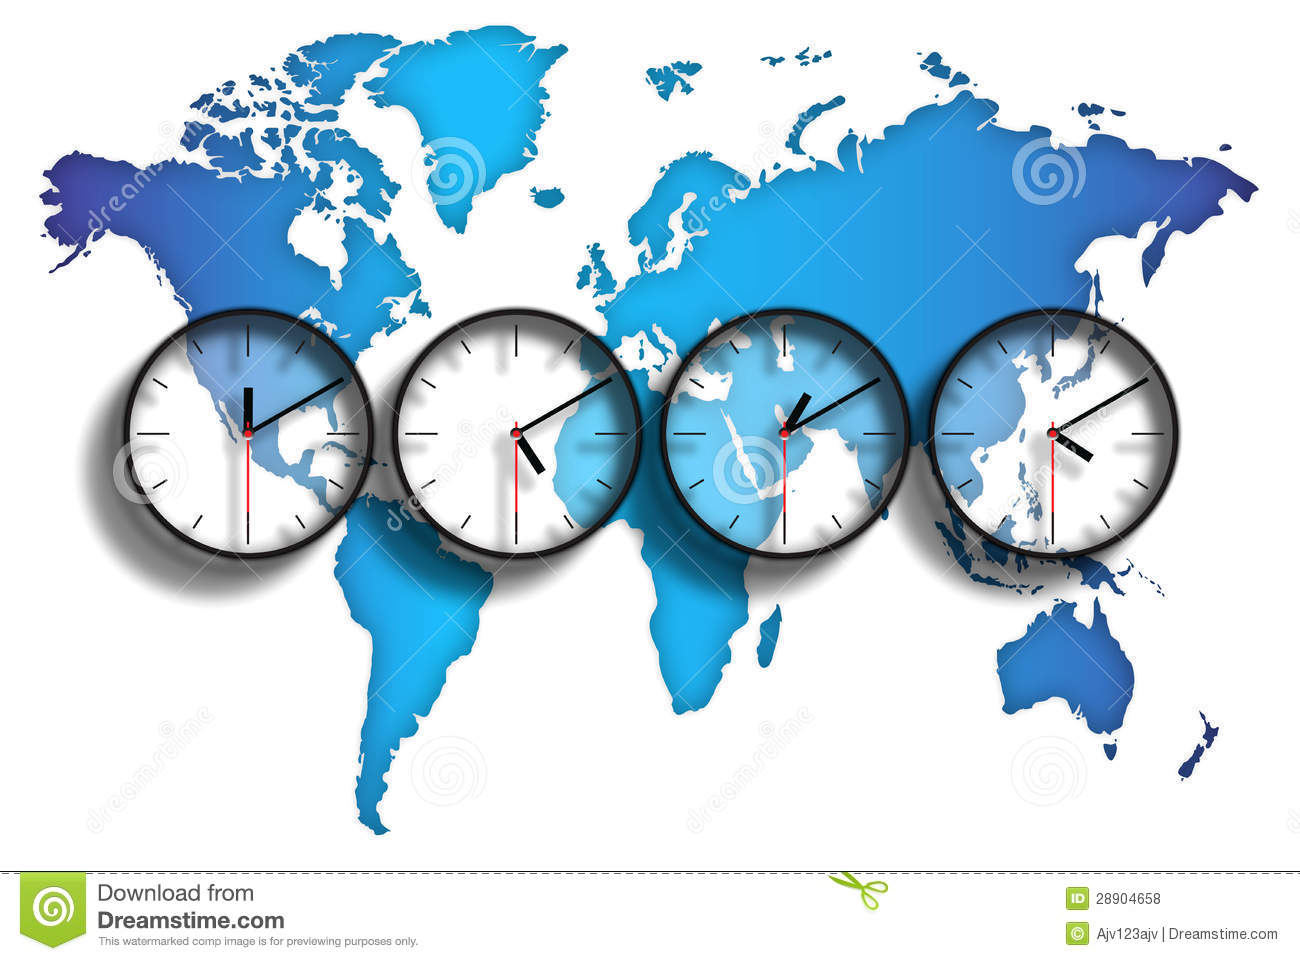 World map time zones stock illustration illustration of kingdoms world map time zones stock illustration illustration of kingdoms 28904658 gumiabroncs